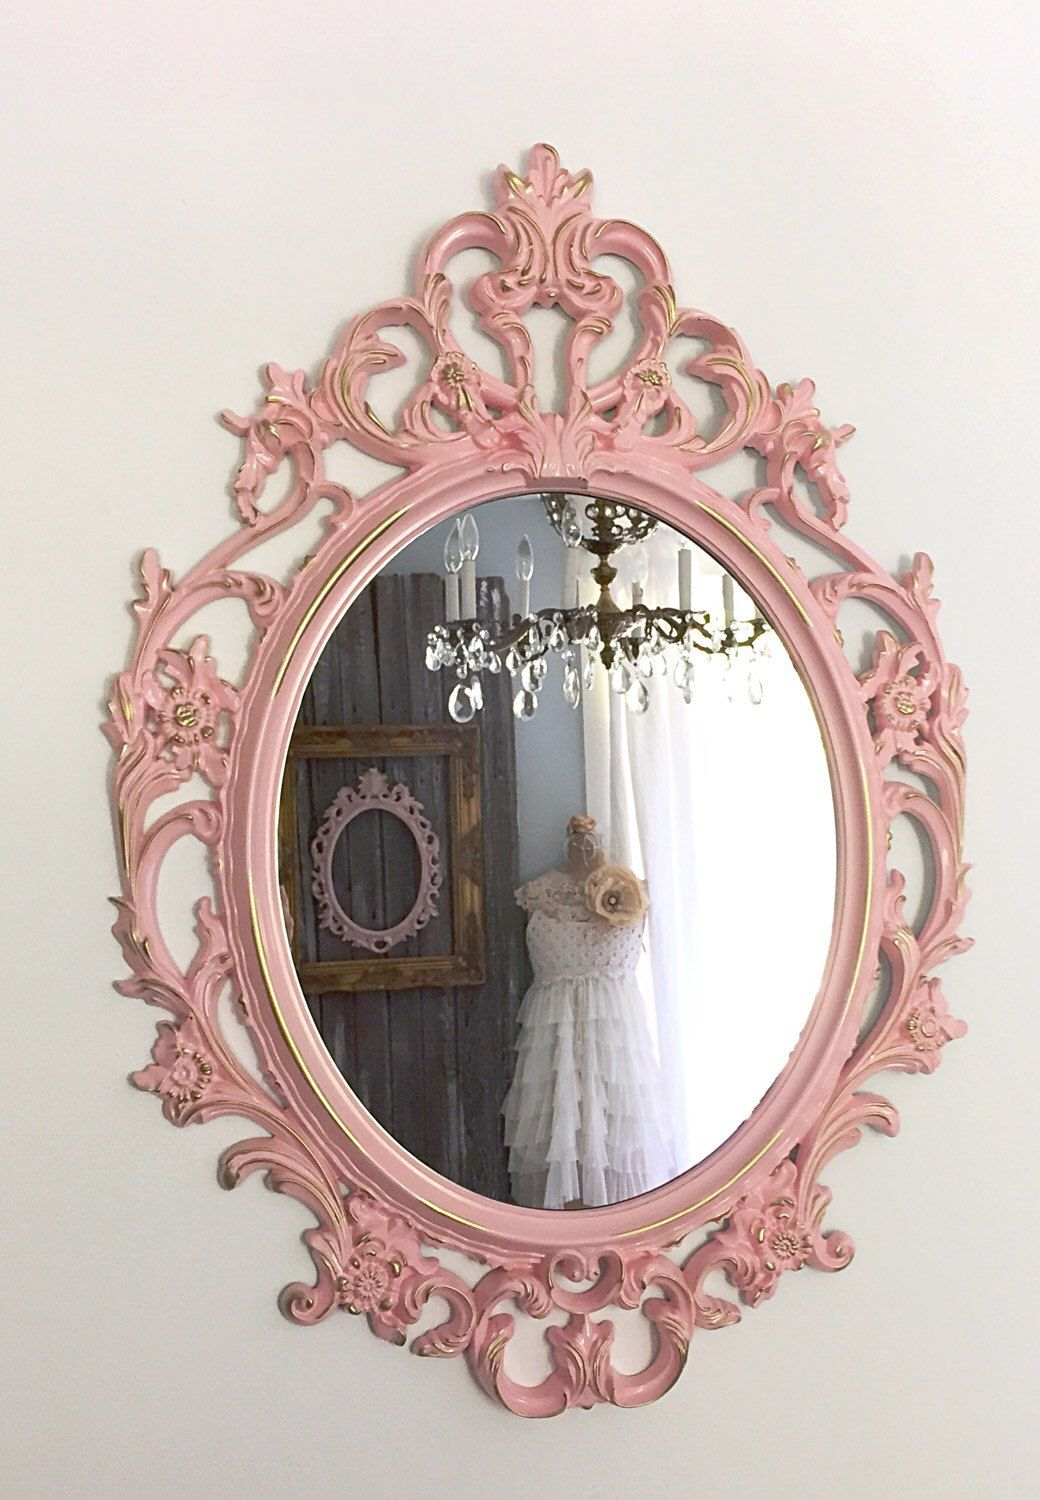 ORNATE OVAL MIRROR, Large Wall Hanging Mirror, Soft Pink Baroque ...